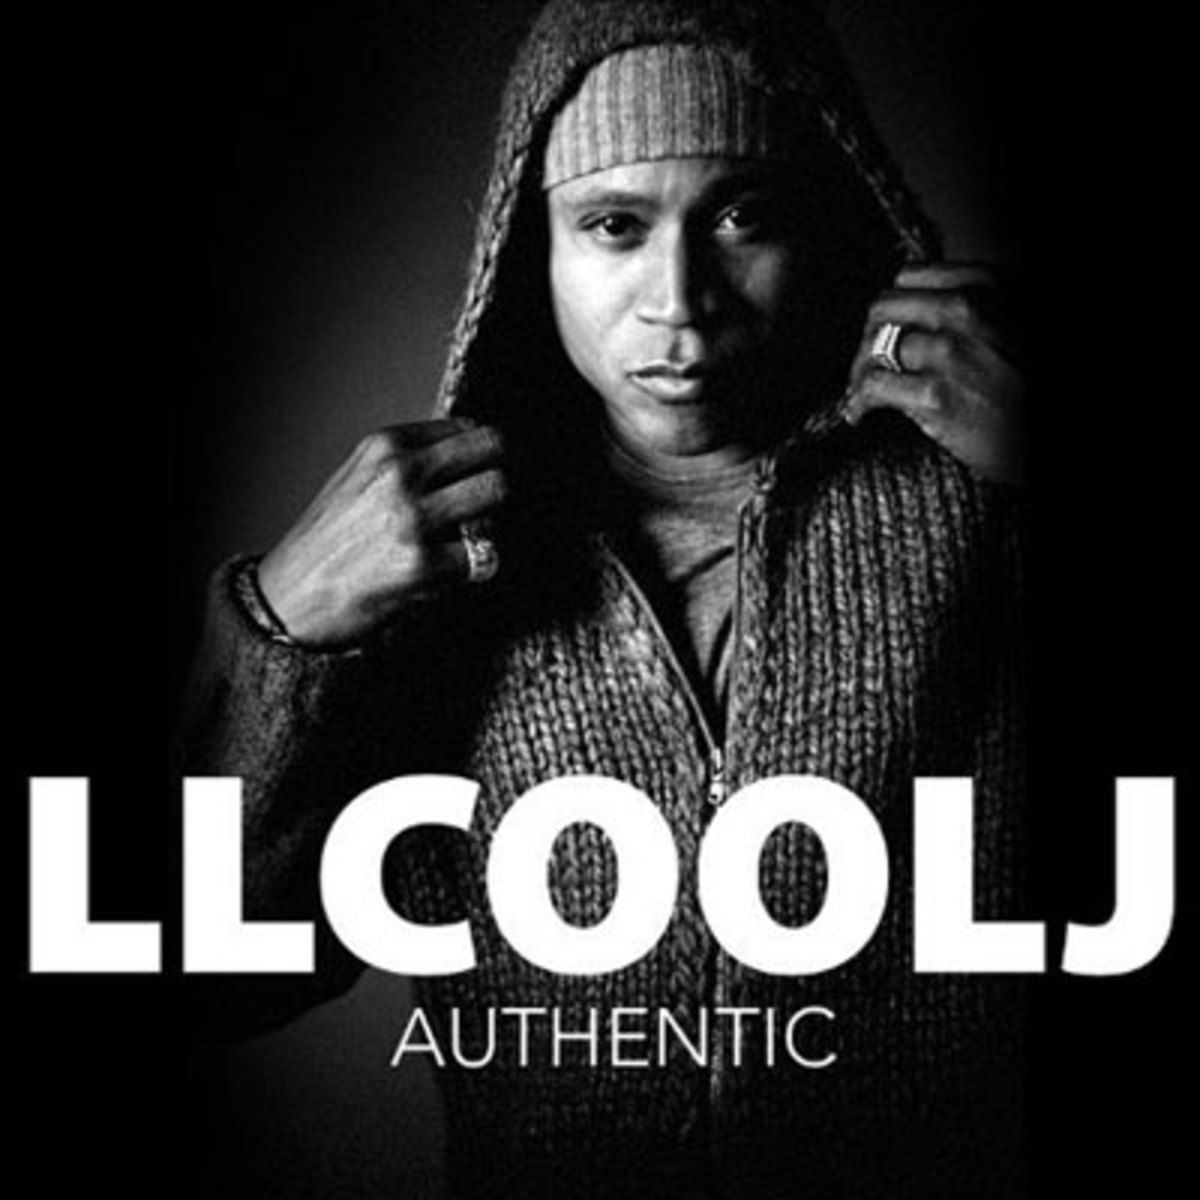 llcoolj-authentic.jpg